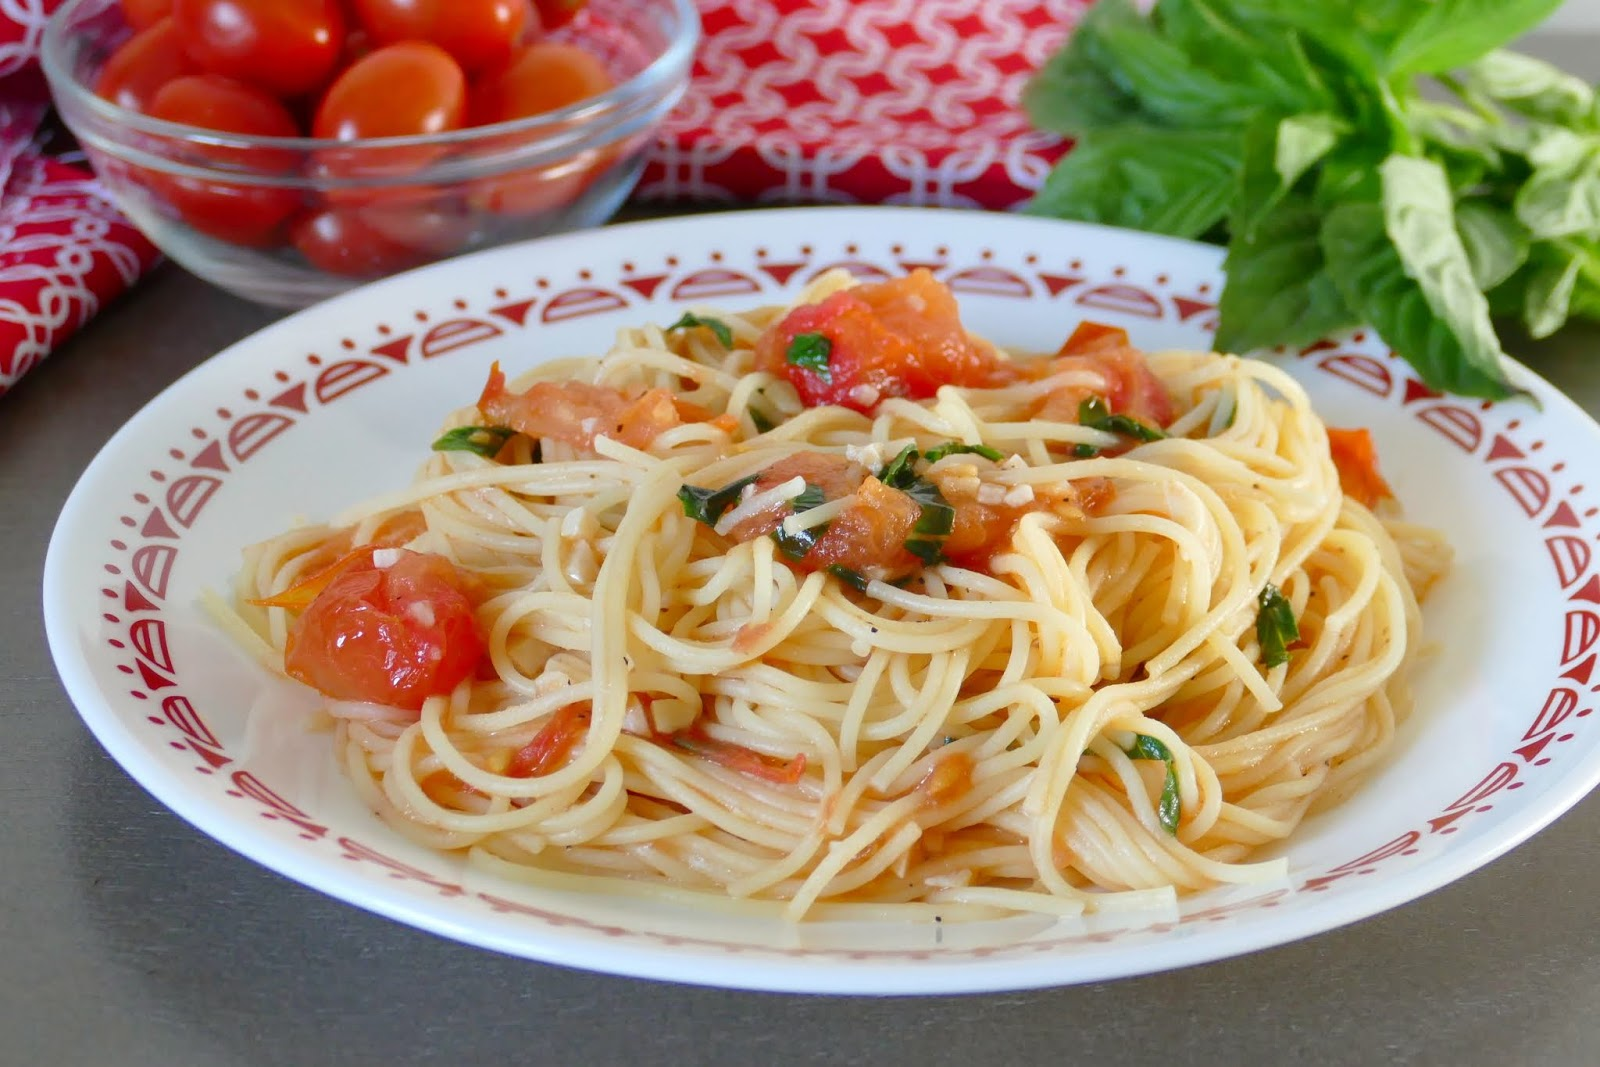 This easy, fresh and delicious copycat recipe from Ciatti's in Saint Cloud, Minnesota is a family favorite! The fresh tomatoes, basil and garlic give the pasta SO much amazing flavor and it's ready in less than 45 minutes, including prep time! Such a wonderful spring or summer lunch or dinner!